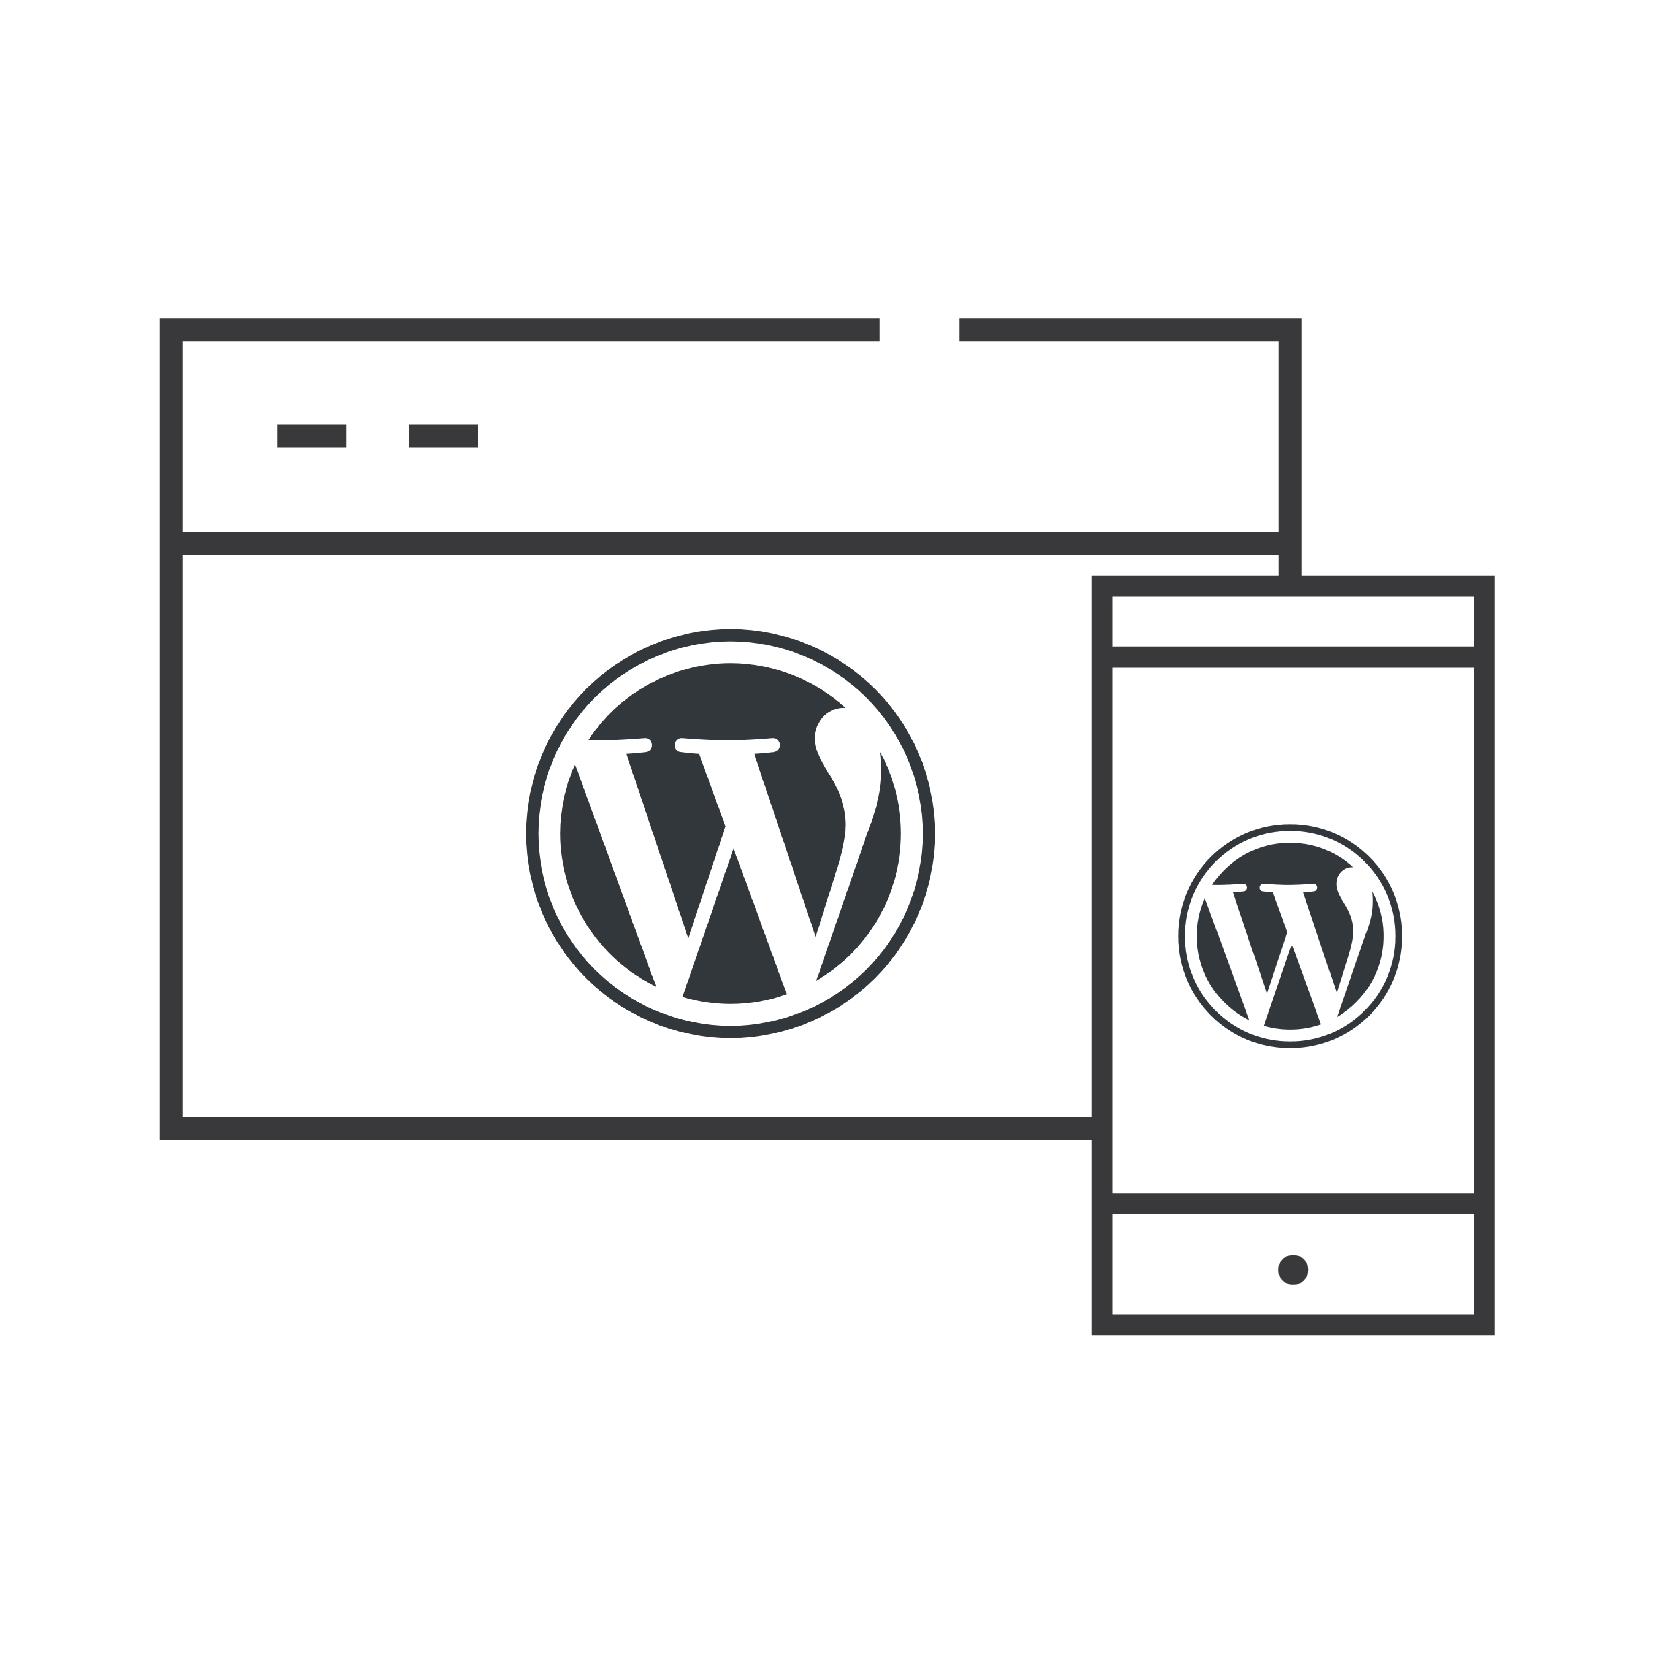 wordpress logo on a pc and on a smartphone